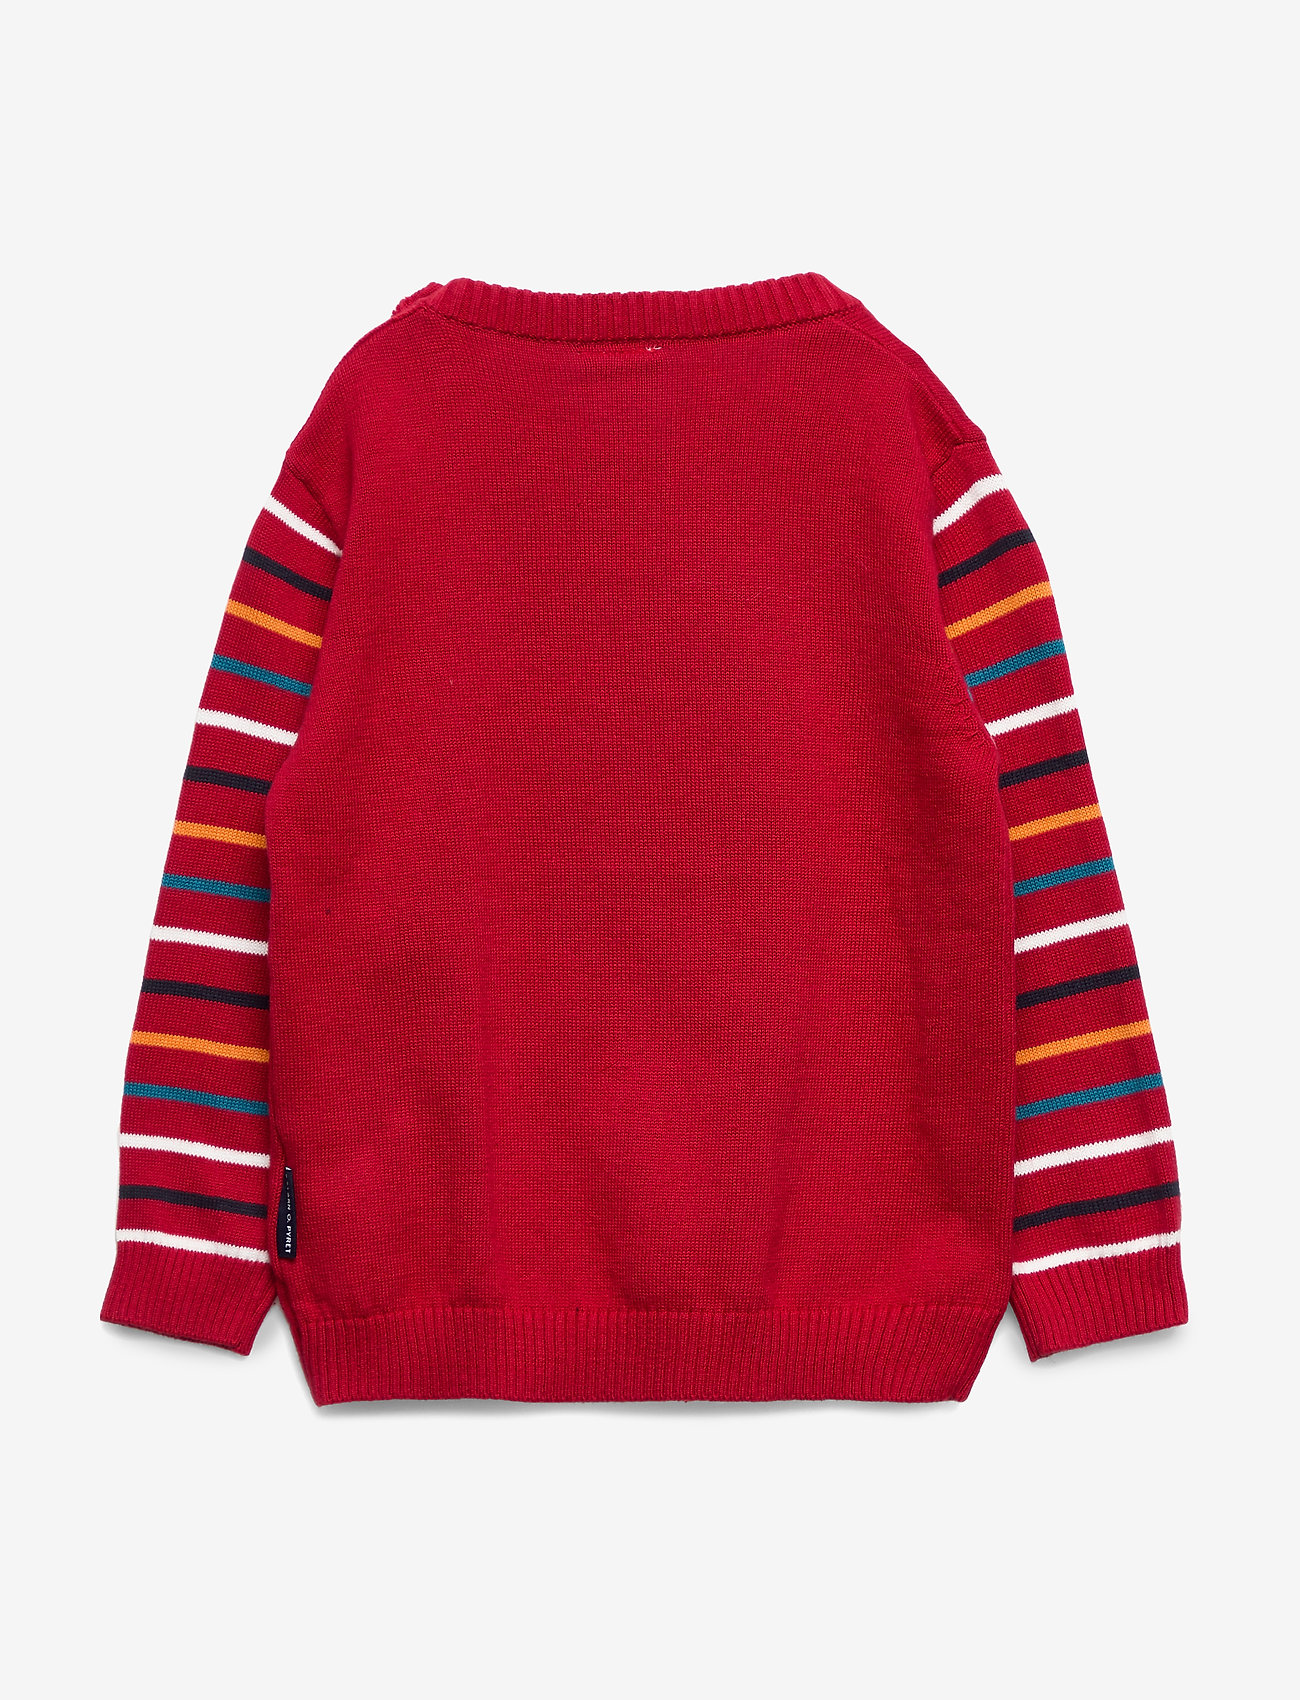 Polarn O. Pyret Sweater Knitted Pre-school - Överdelar Chili Pepper